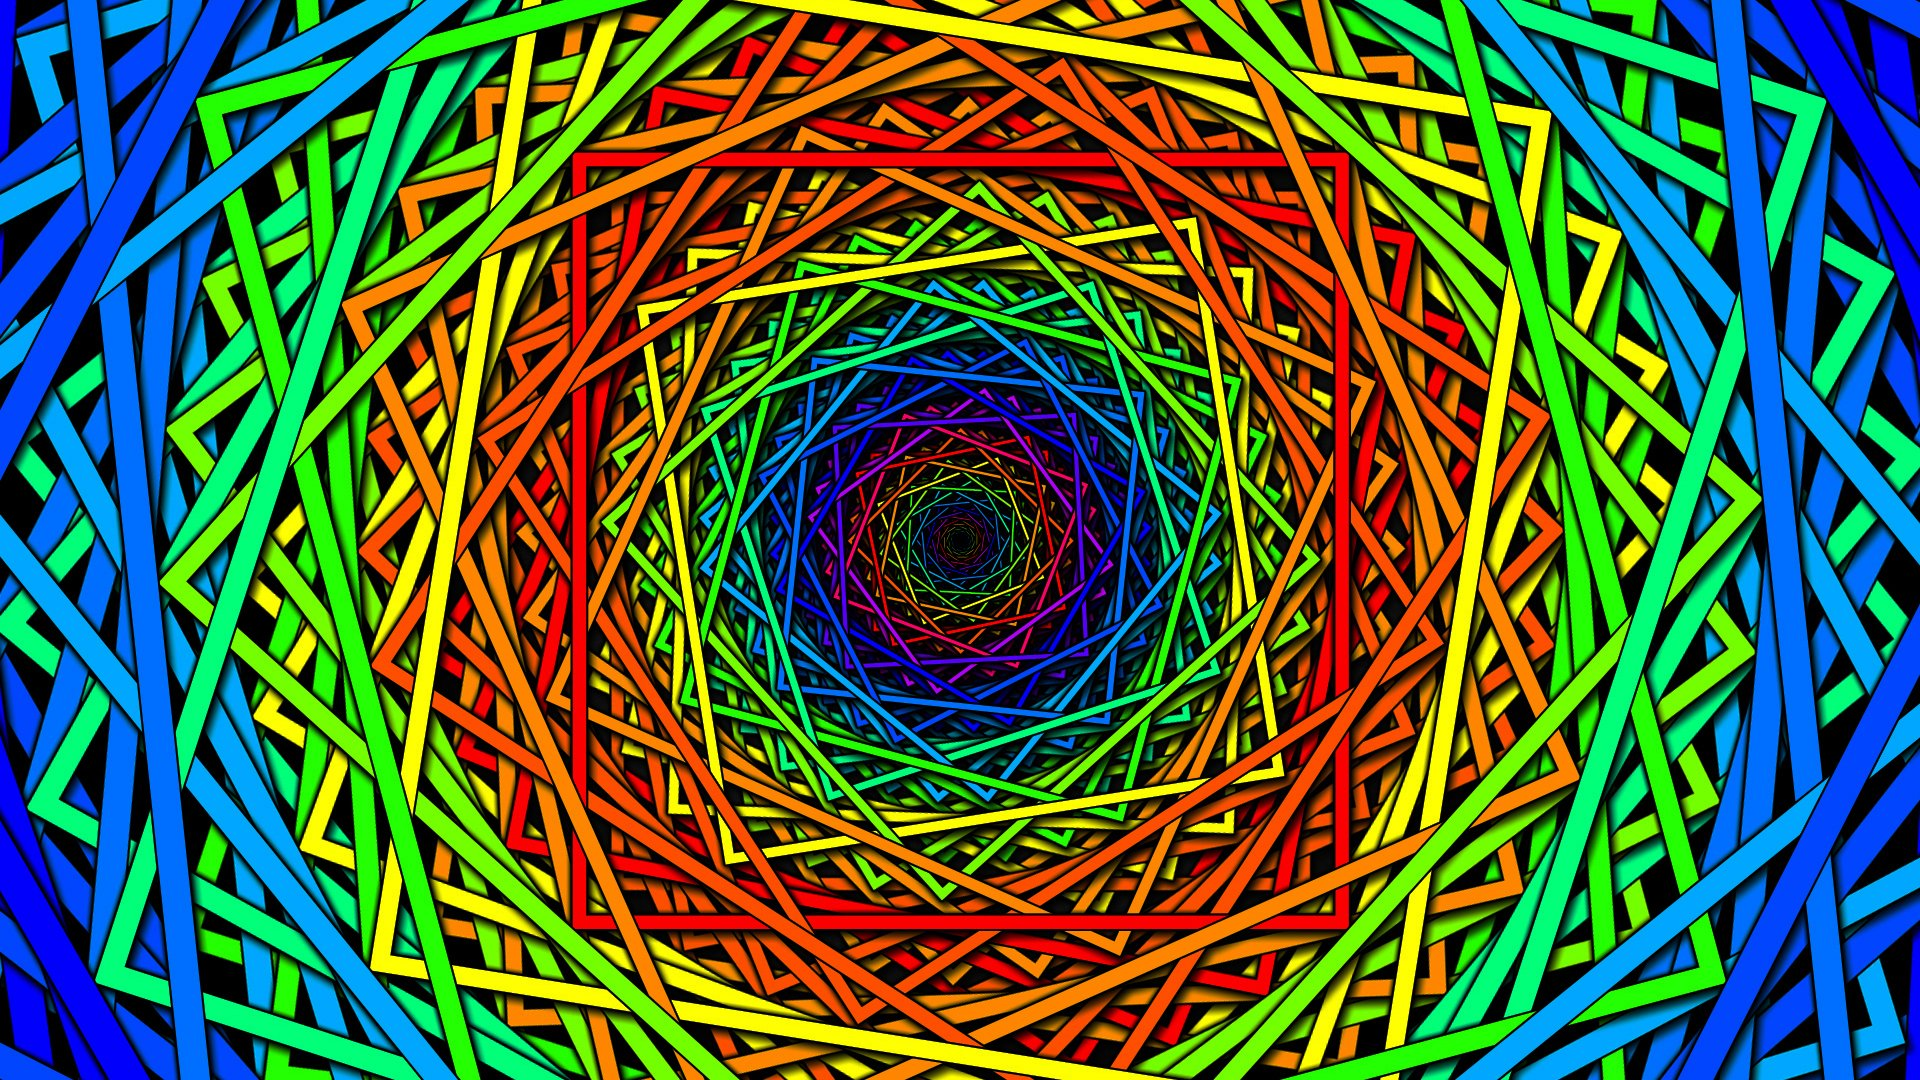 Multicolor spiral psychedelic geometry wallpaper 1920x1080 323673 1920x1080